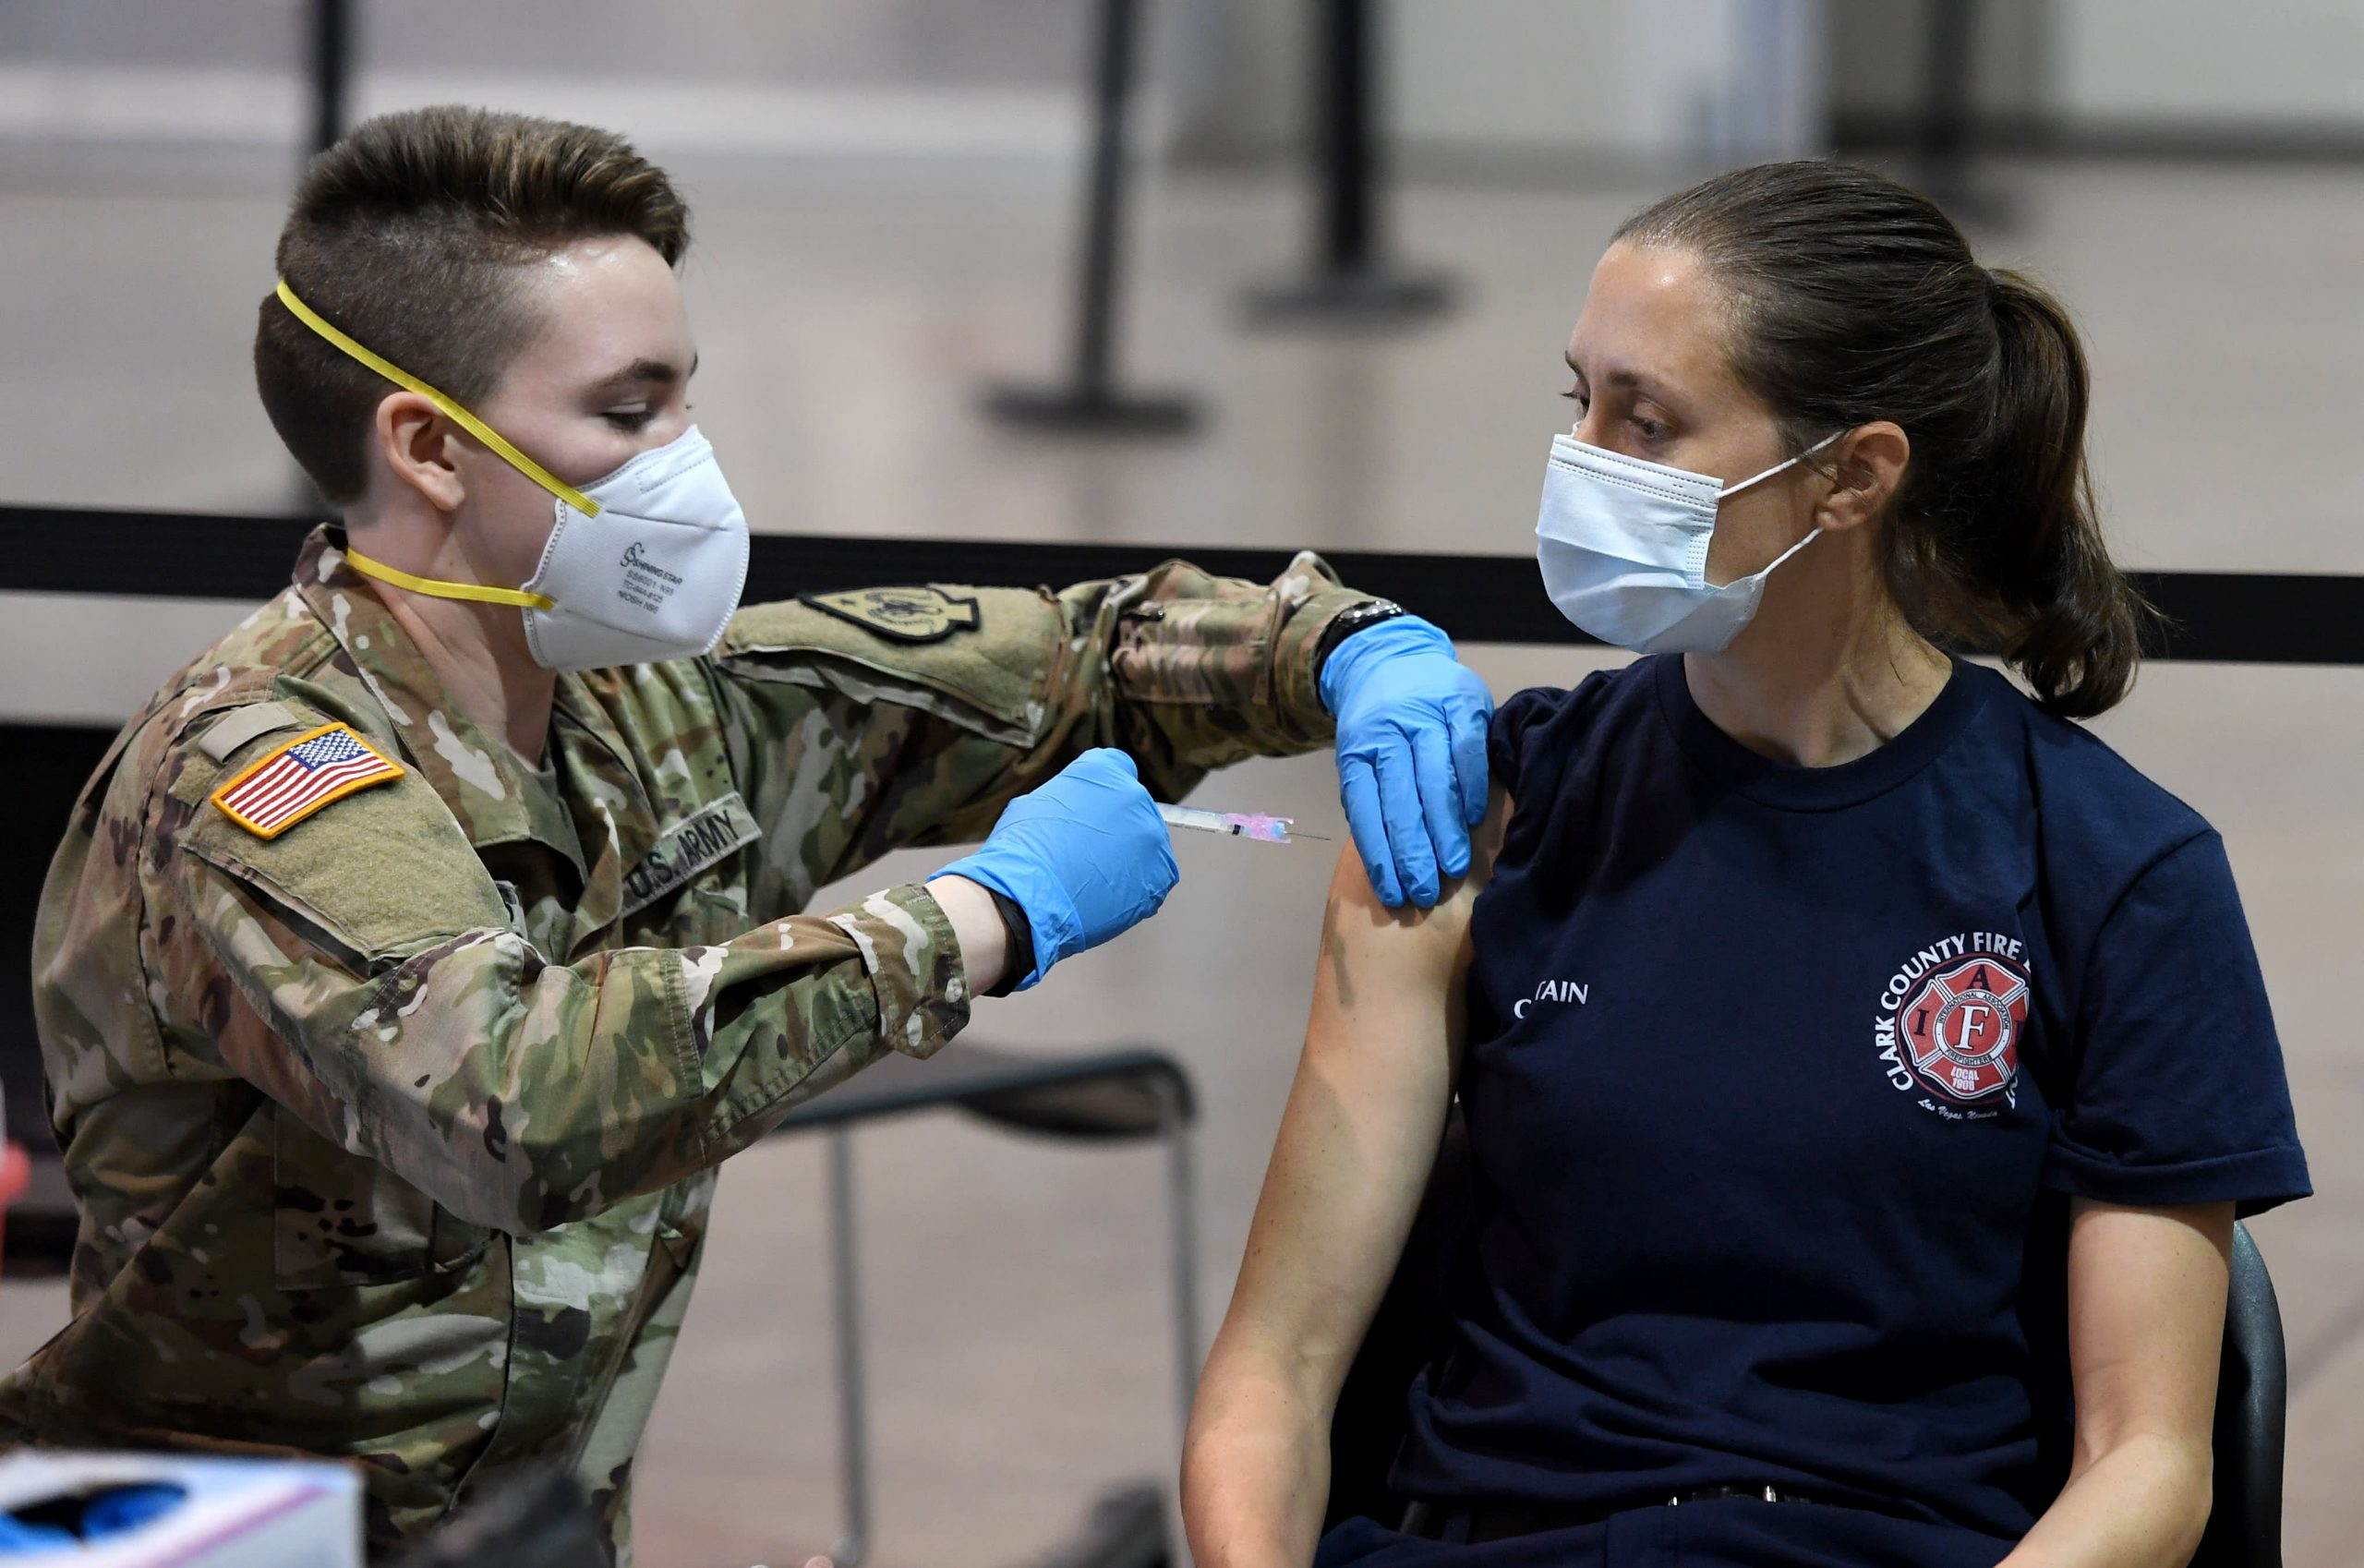 Biden to deploy FEMA, Nationwide Guard to arrange Covid vaccine clinics throughout U.S.